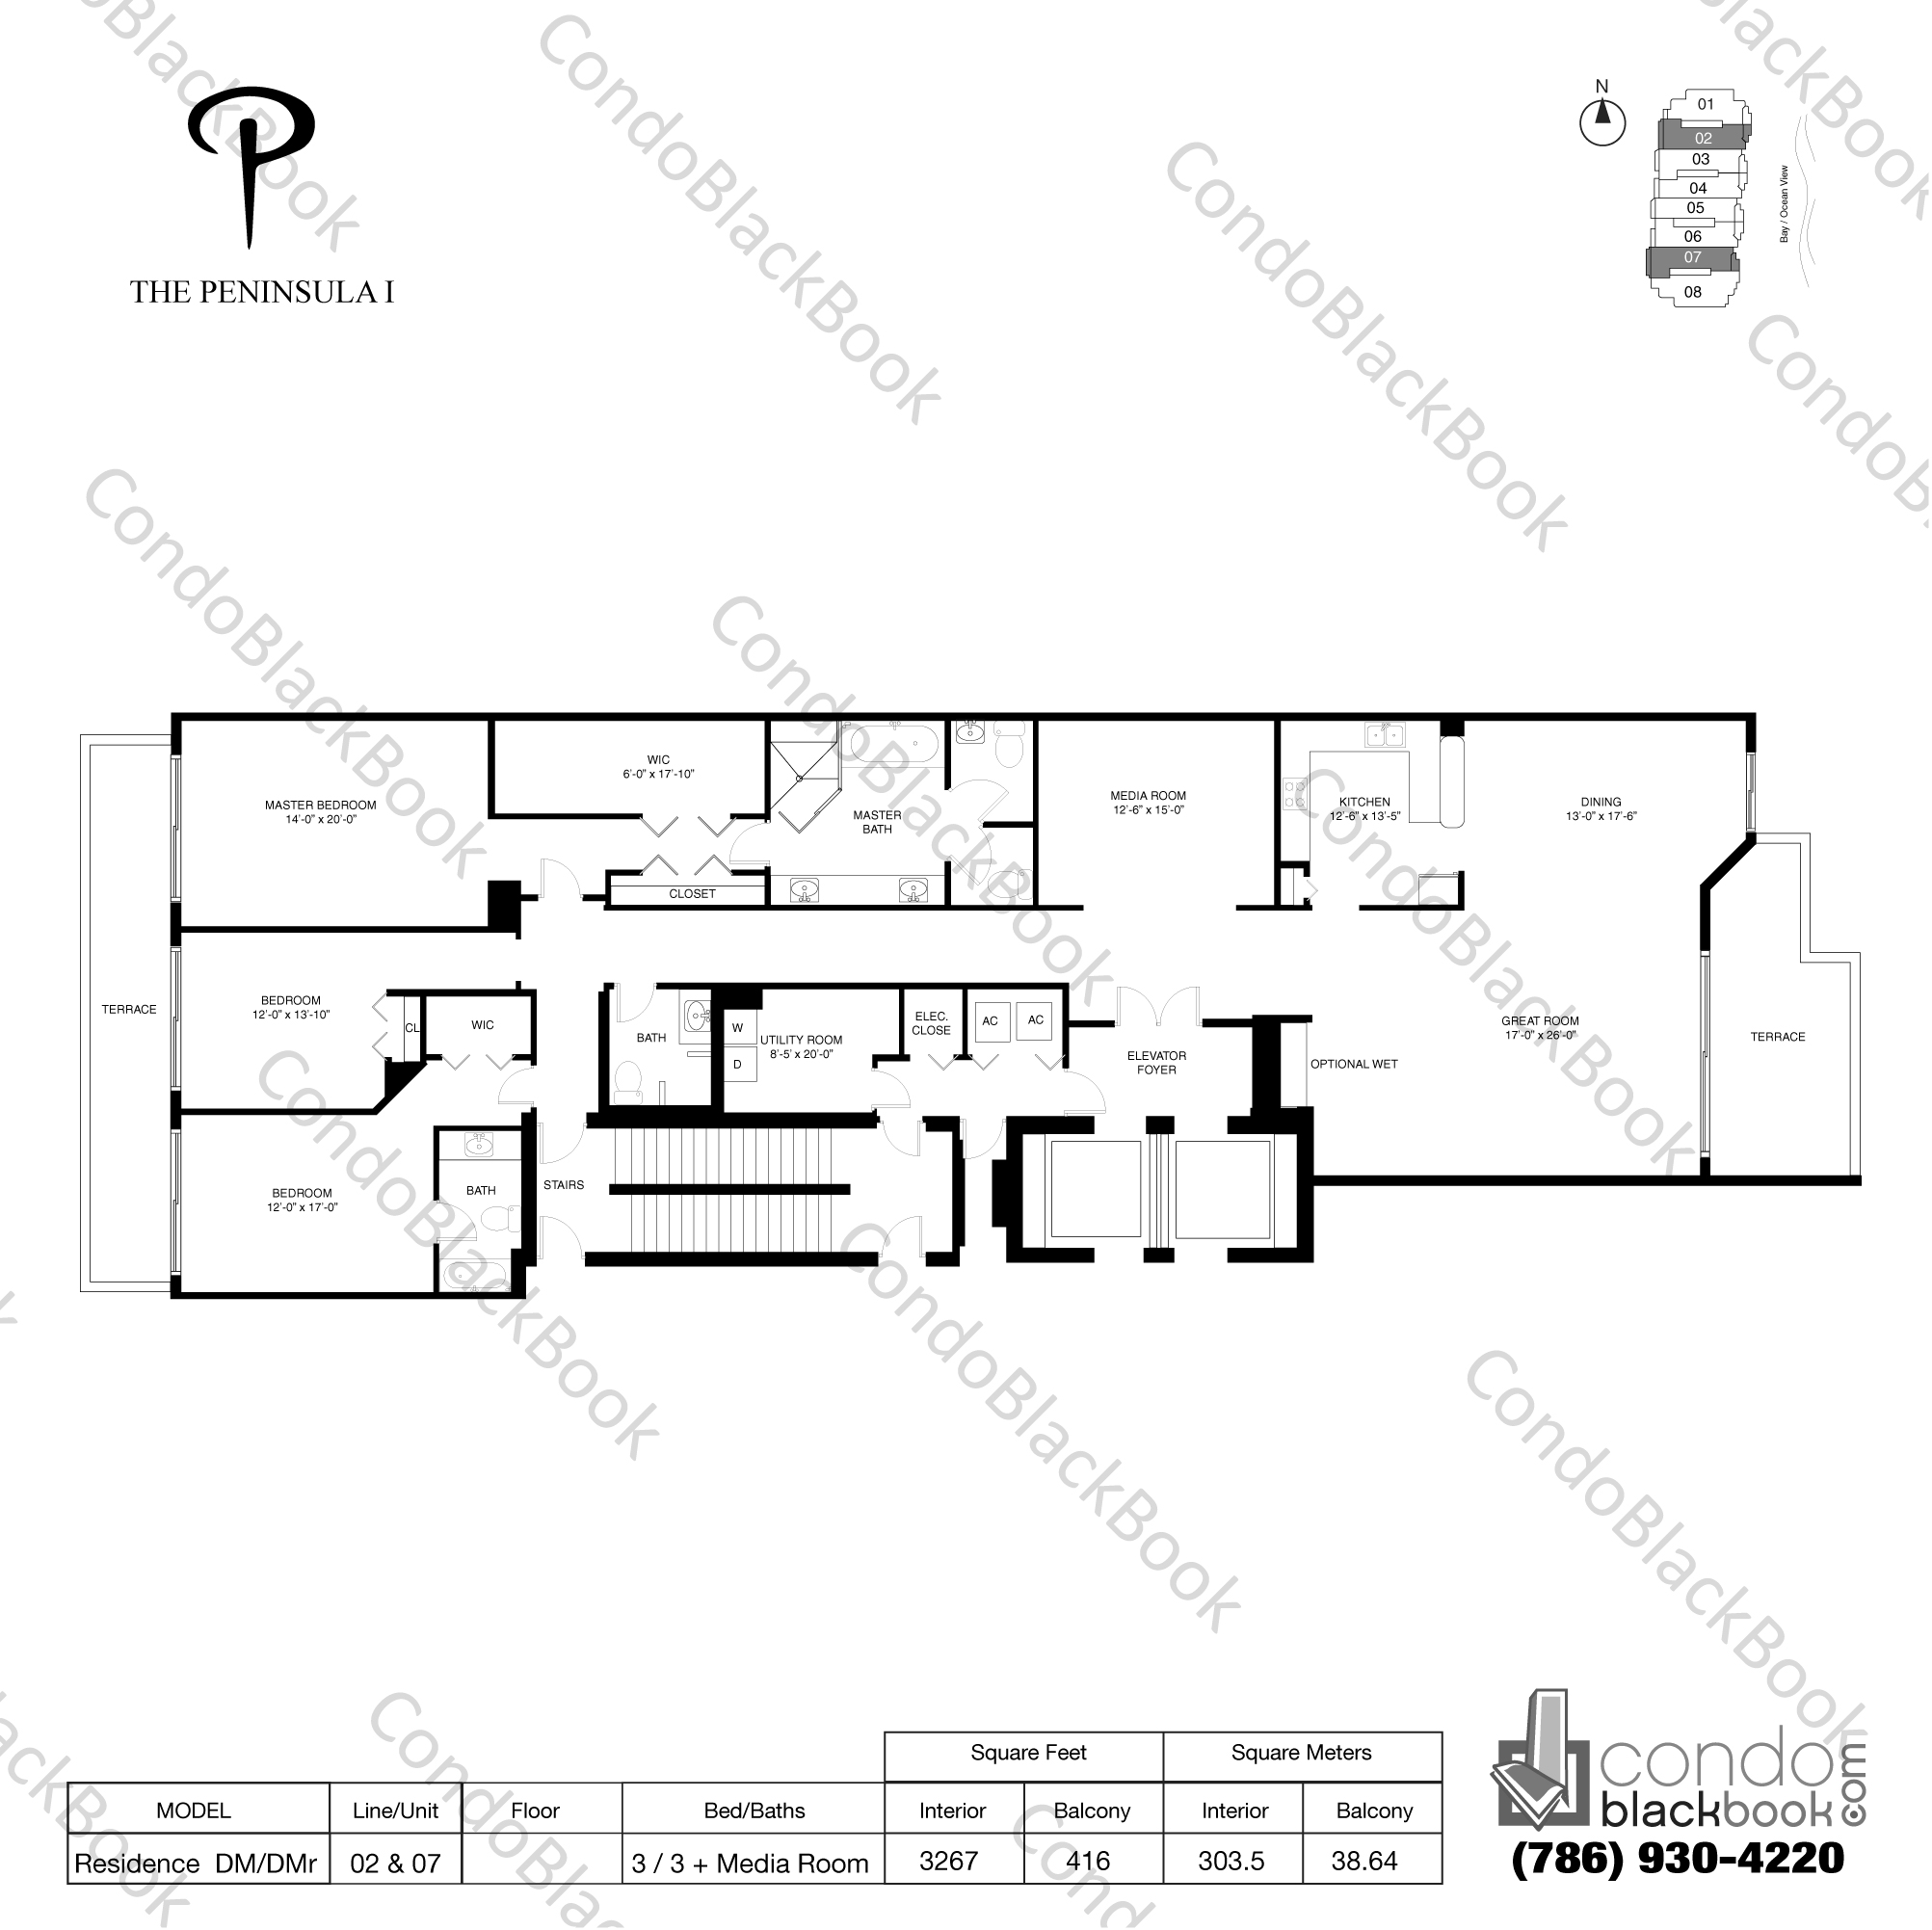 Floor plan for Peninsula Aventura, model Pesidence DM/DMR, line 02, 07, 3 / 3 + Media Room bedrooms, 3267 sq ft